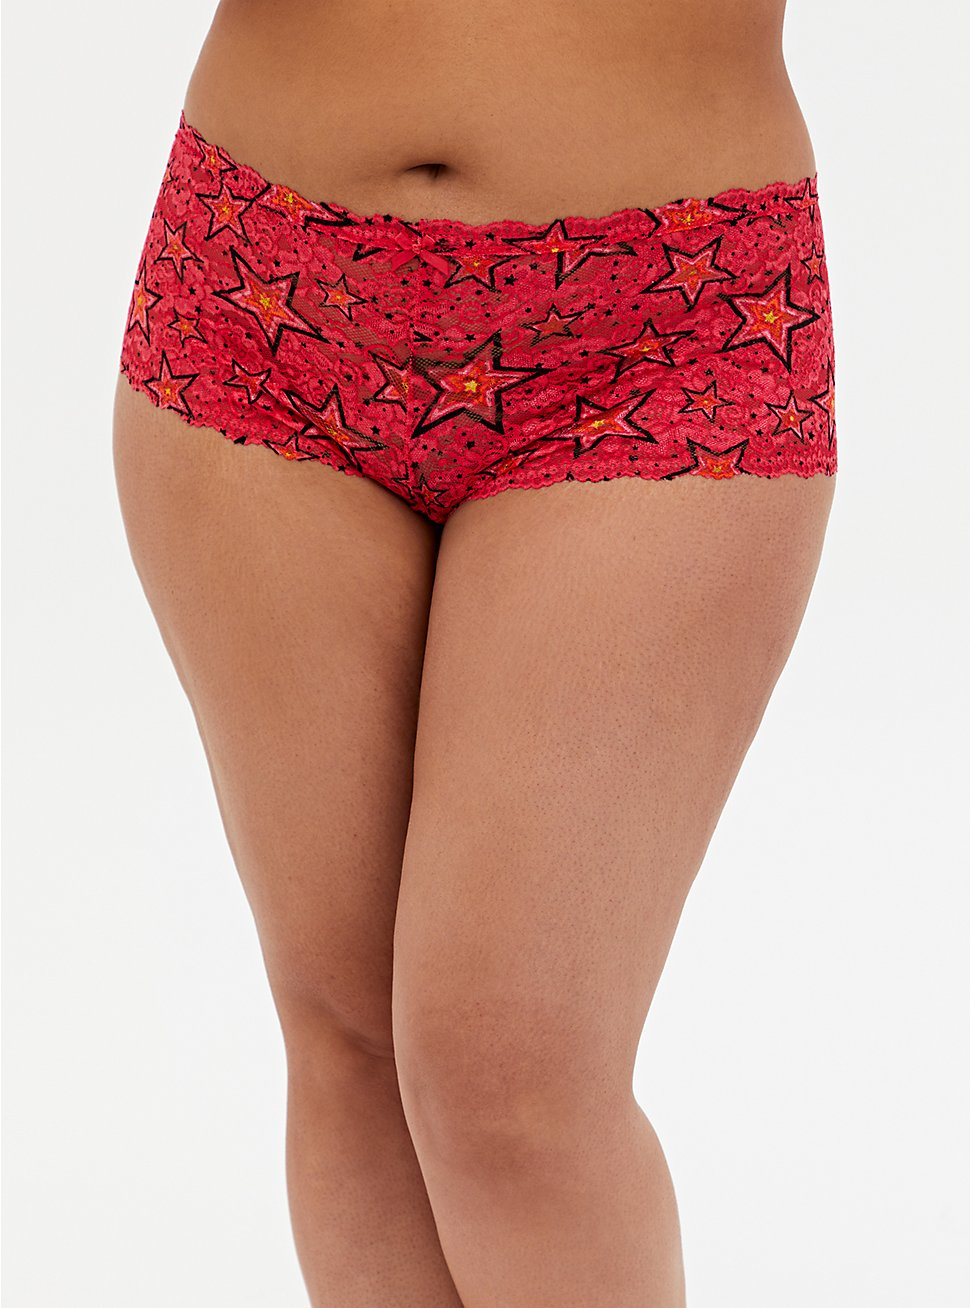 Raspberry Pink Radiant Star Lace Cheeky Panty, RADIANT STARS, hi-res